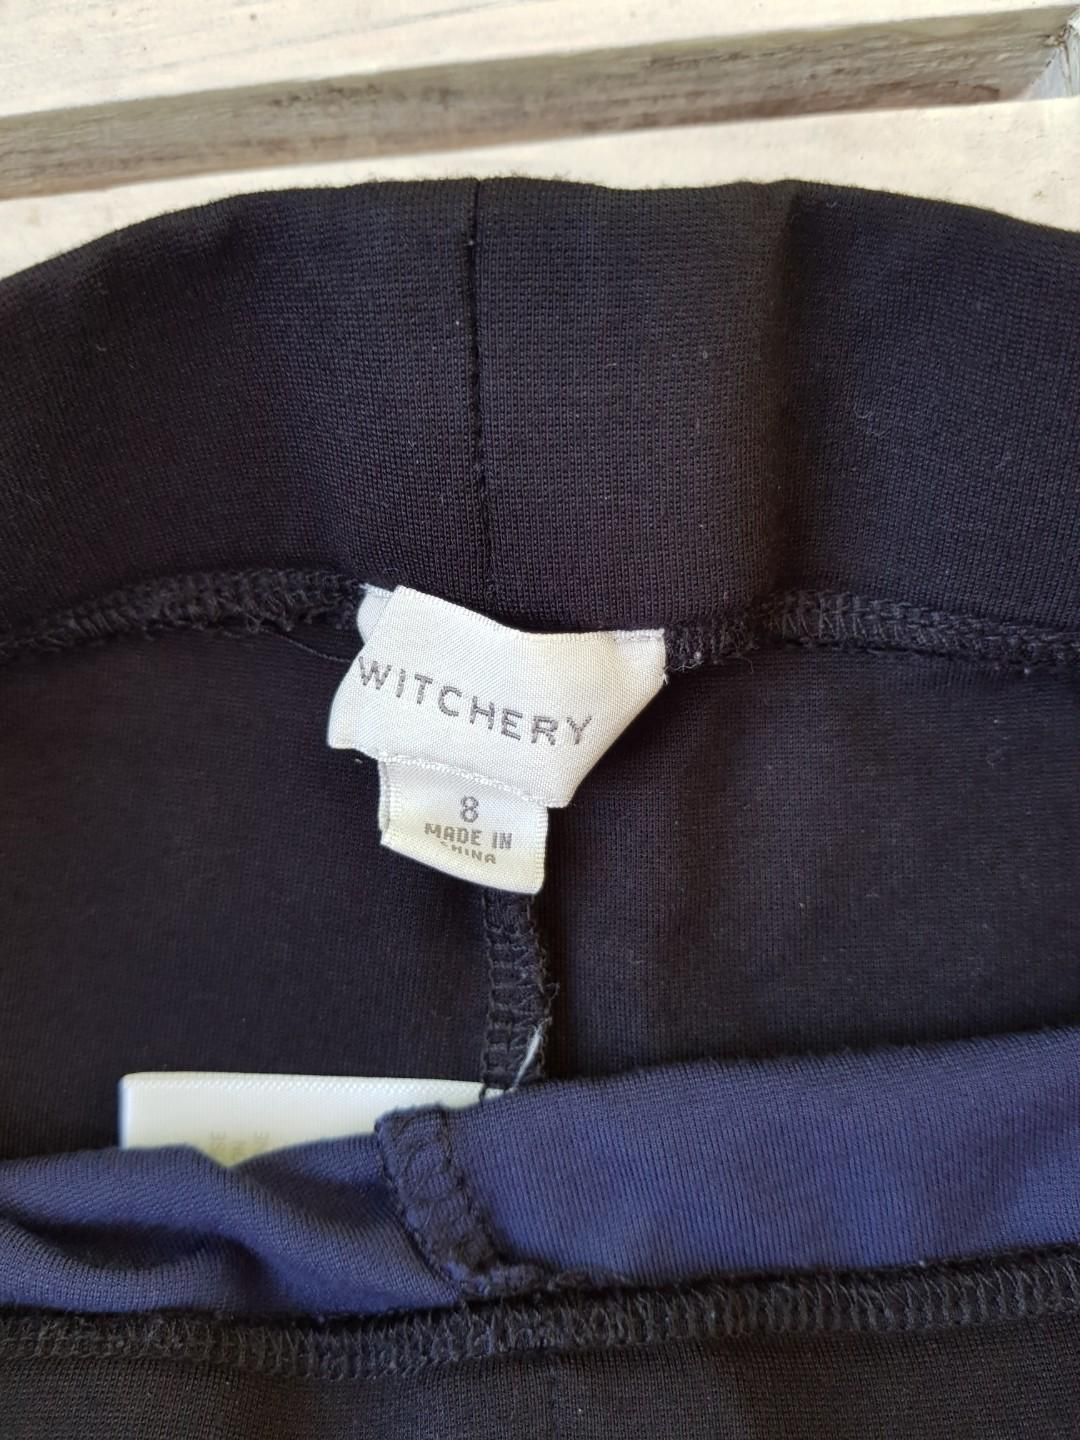 WITCHERY blue and black ponte pant.